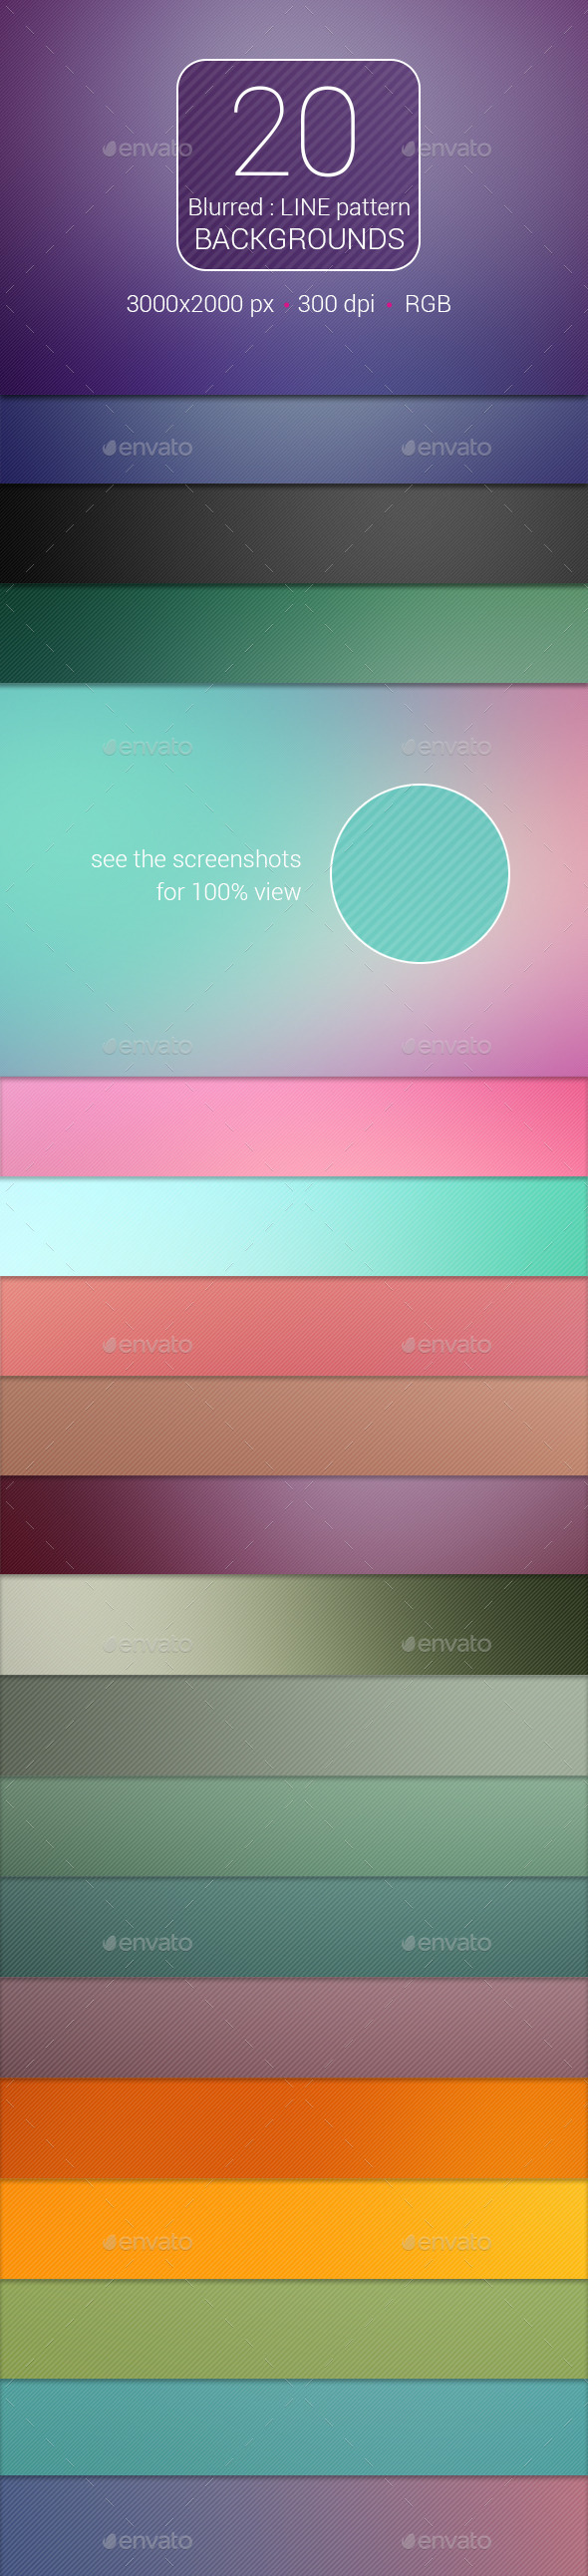 20 Blurred Line Pattern Backgrounds - Backgrounds Graphics